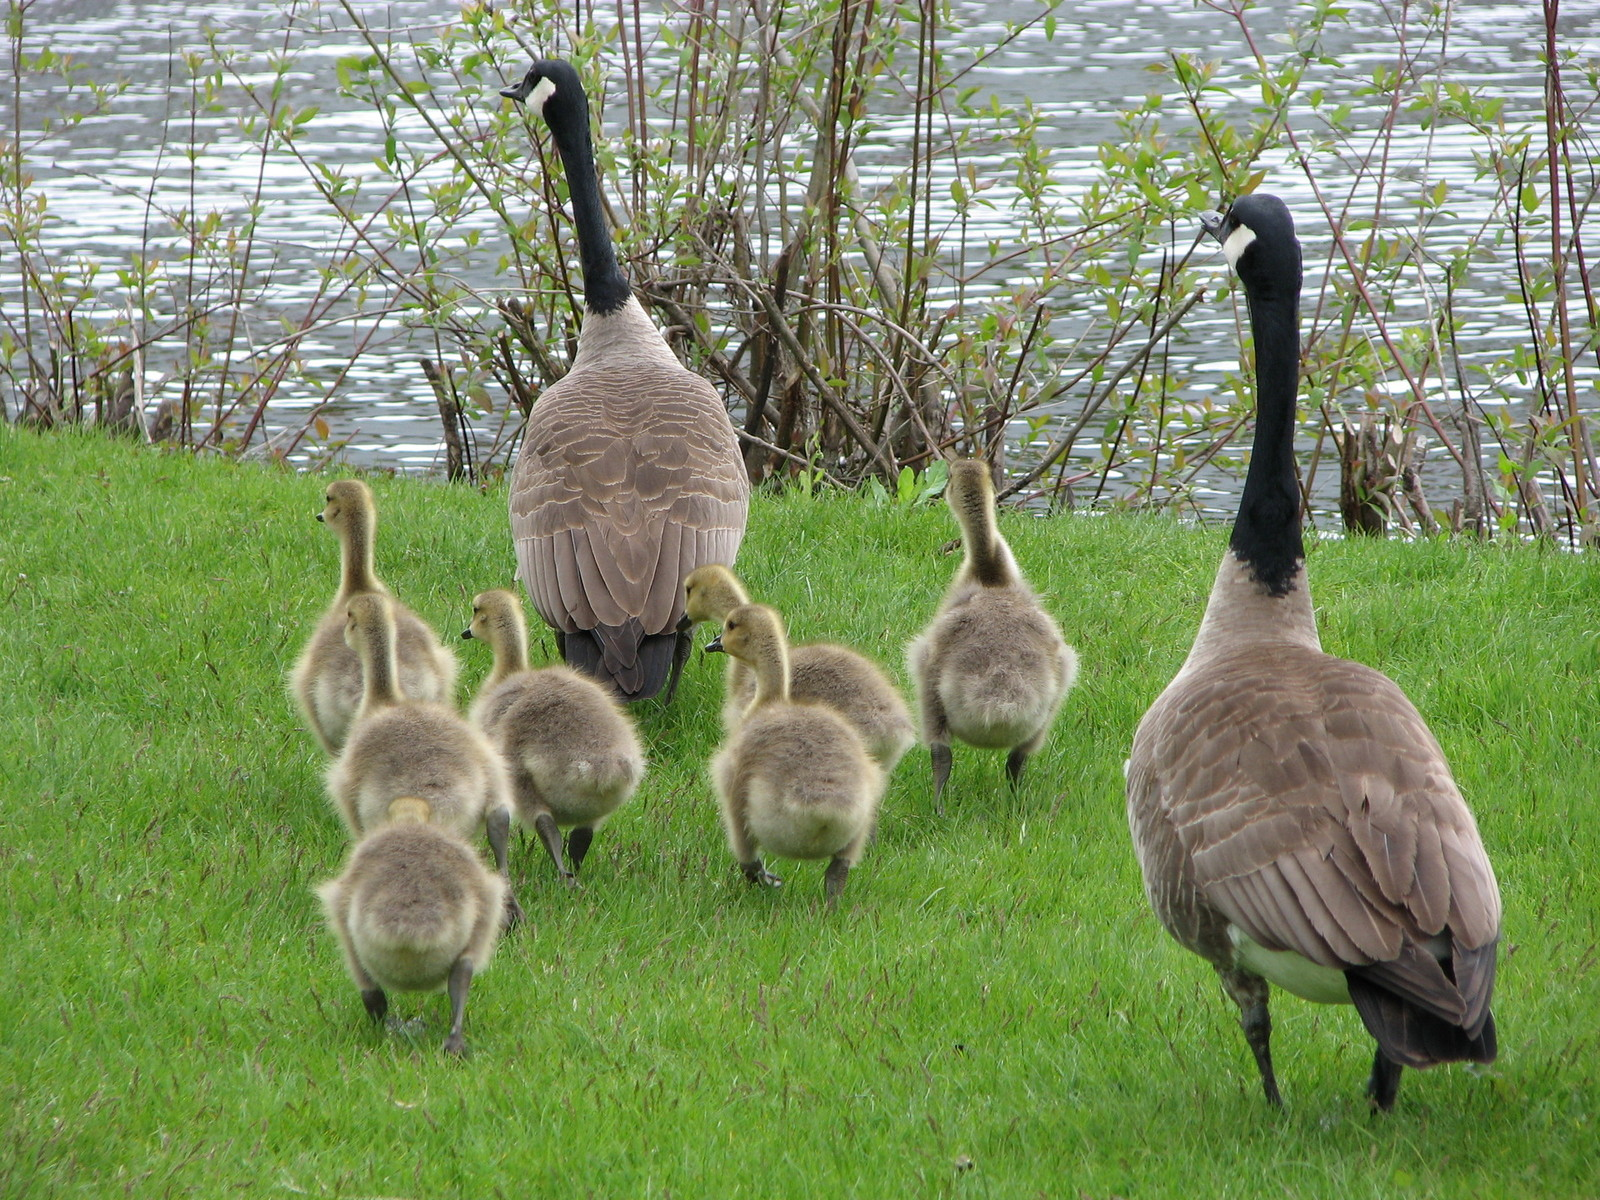 family-of-canada-geese-2-1396991-1600x1200